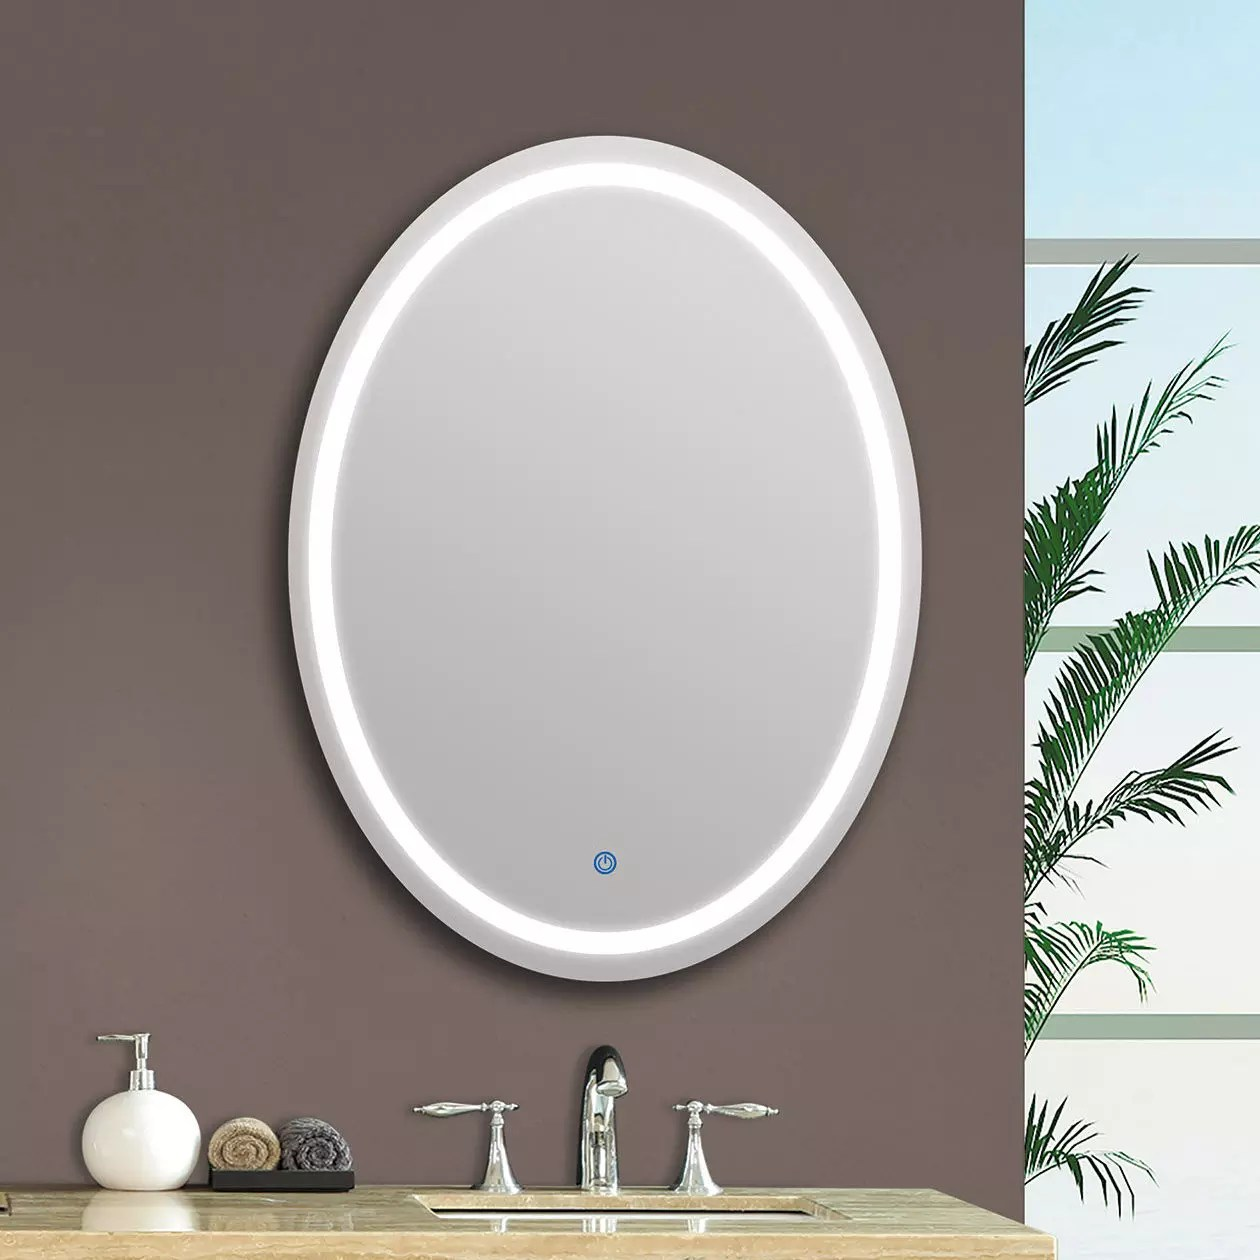 China Oval Mirrors Bathroom China Oval Mirrors Bathroom Manufacturers And Suppliers On Alibaba Com